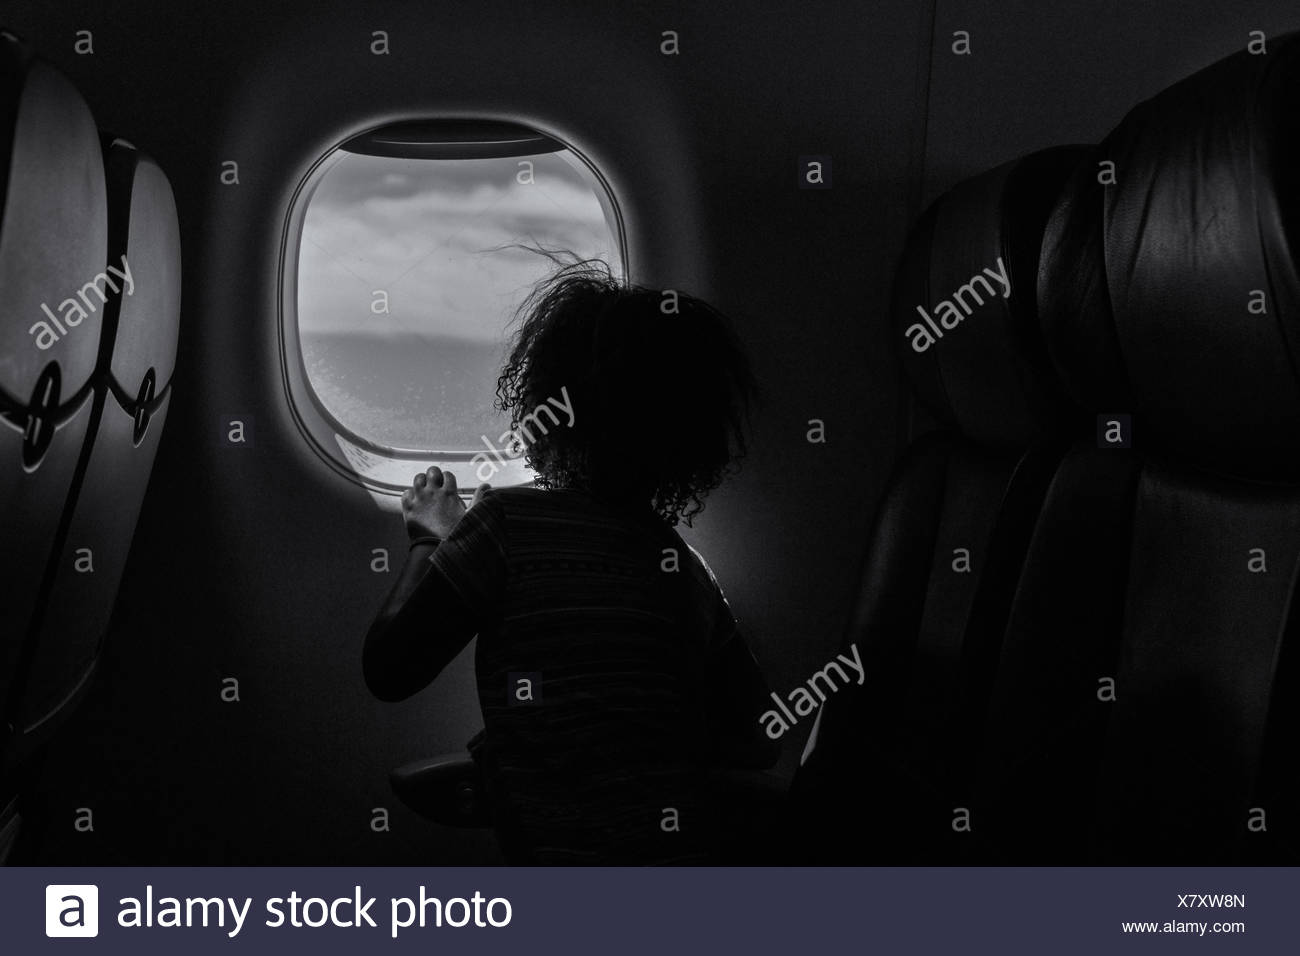 Rear view of a girl looking out of the window on a plane - Stock Image